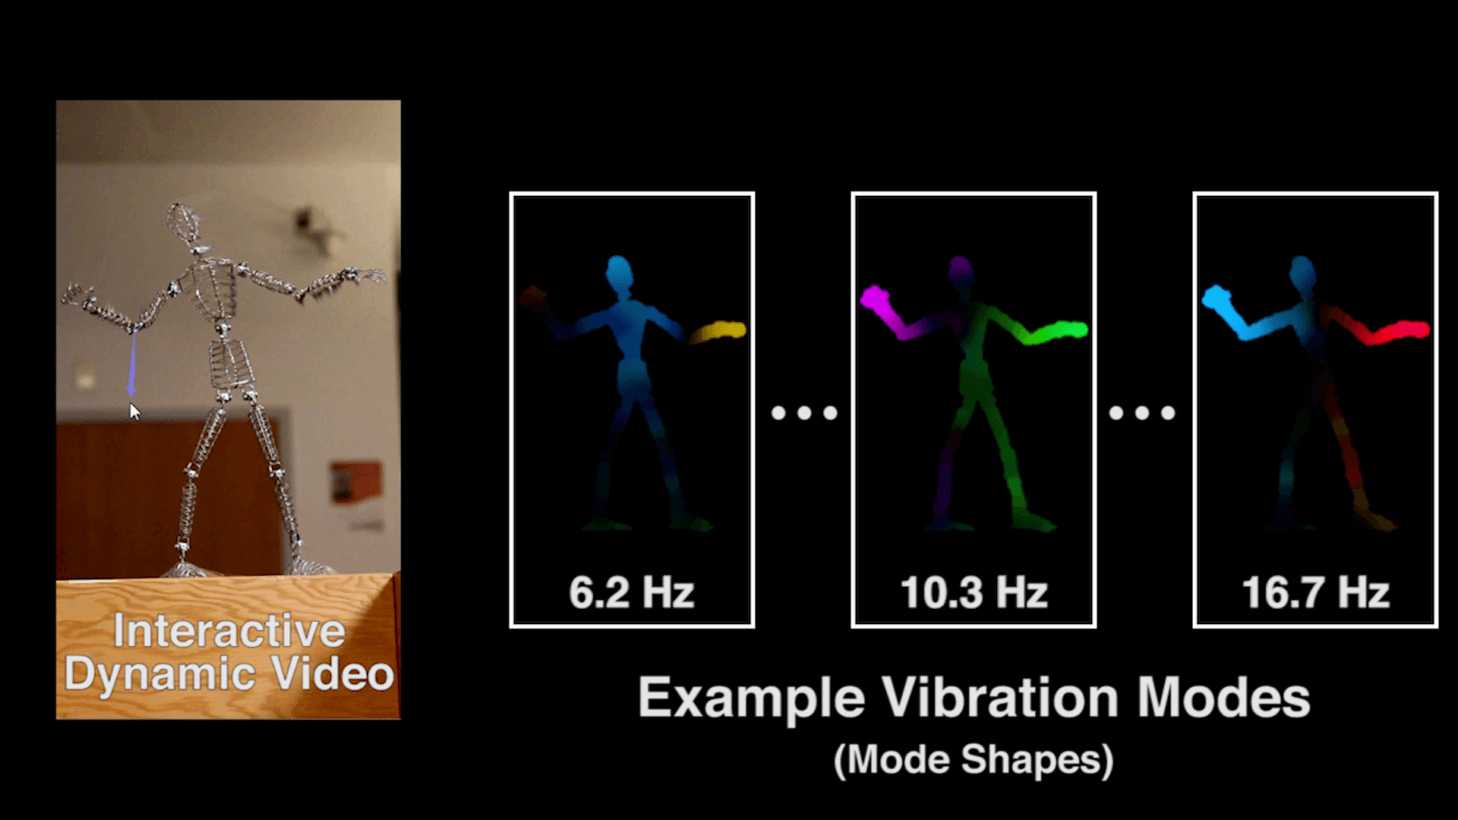 MIT just changed the AR game with 'Interactive Dynamic Video'